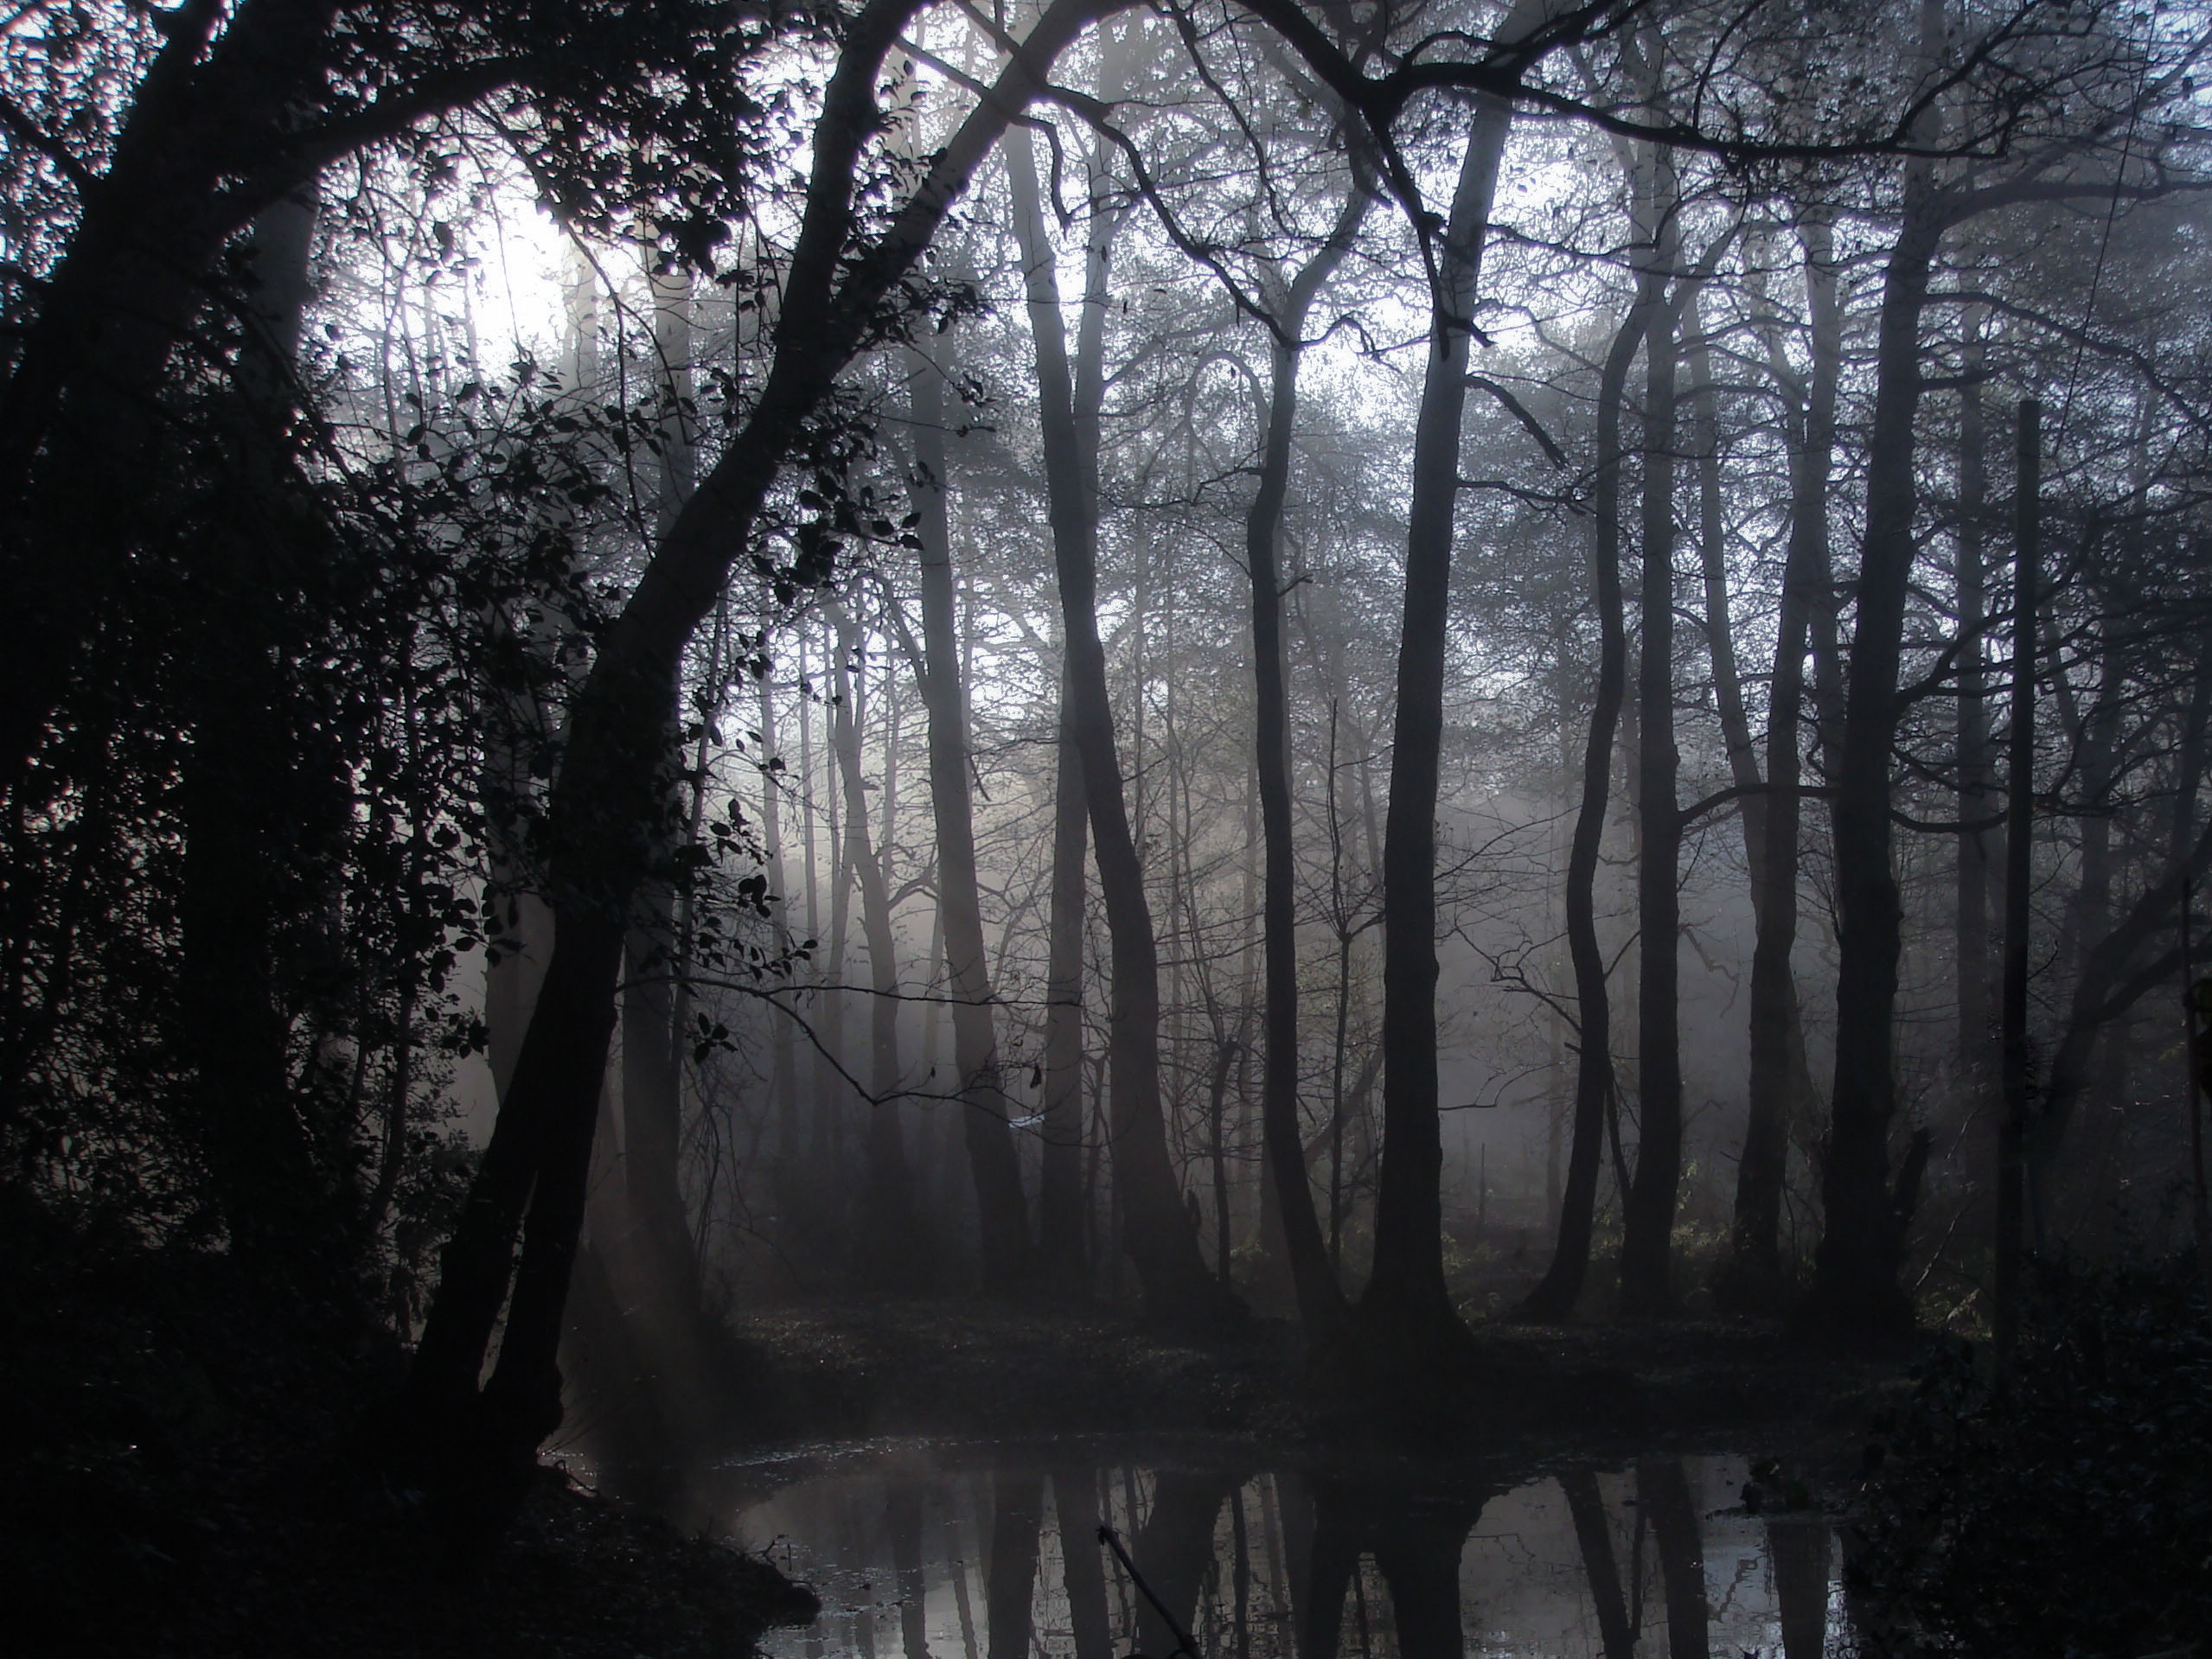 Drawn forest spooky Flickr  Fagerlund via morning